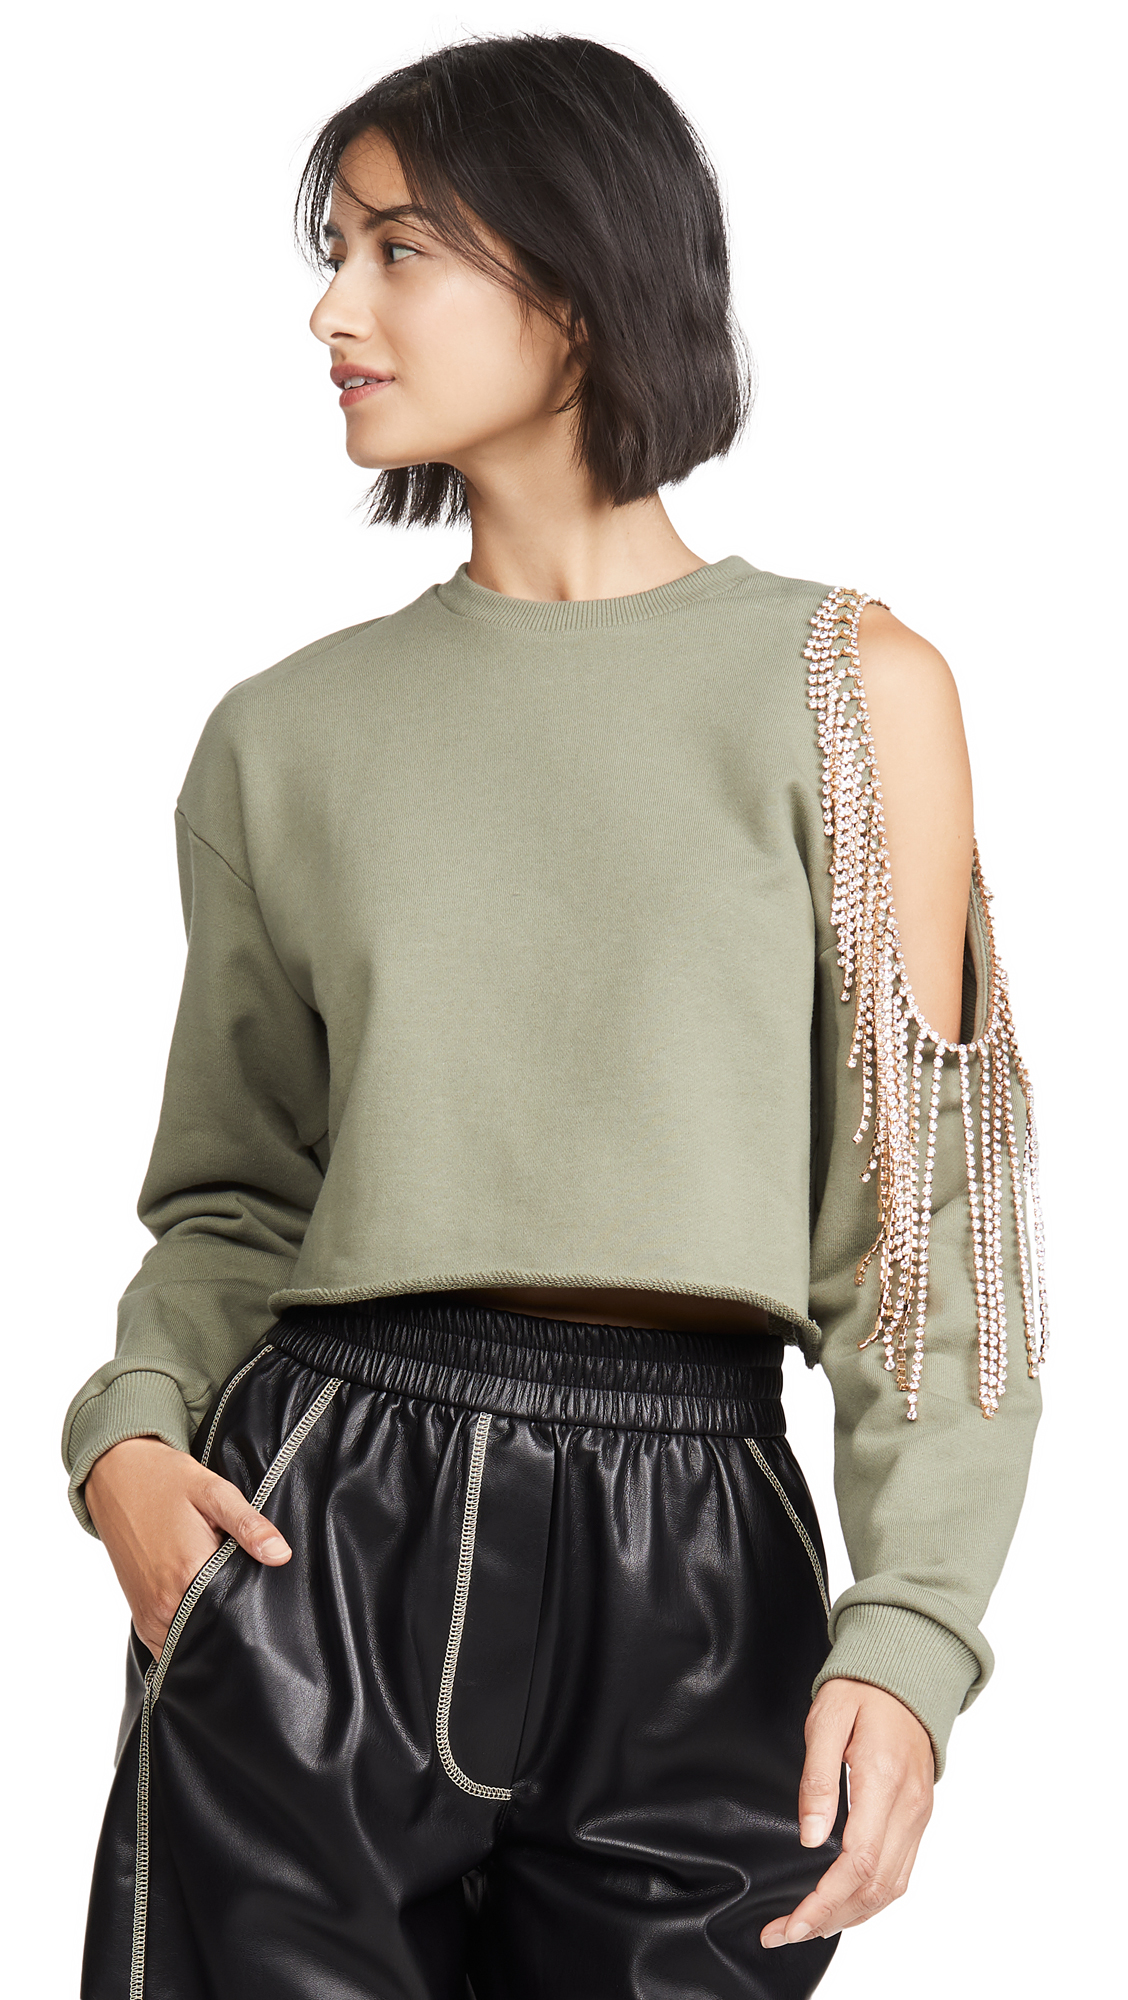 Photo of Area Pullover Sweatshirt with Cutout Shoulder - shop Area Clothing, Shirts, Tops online